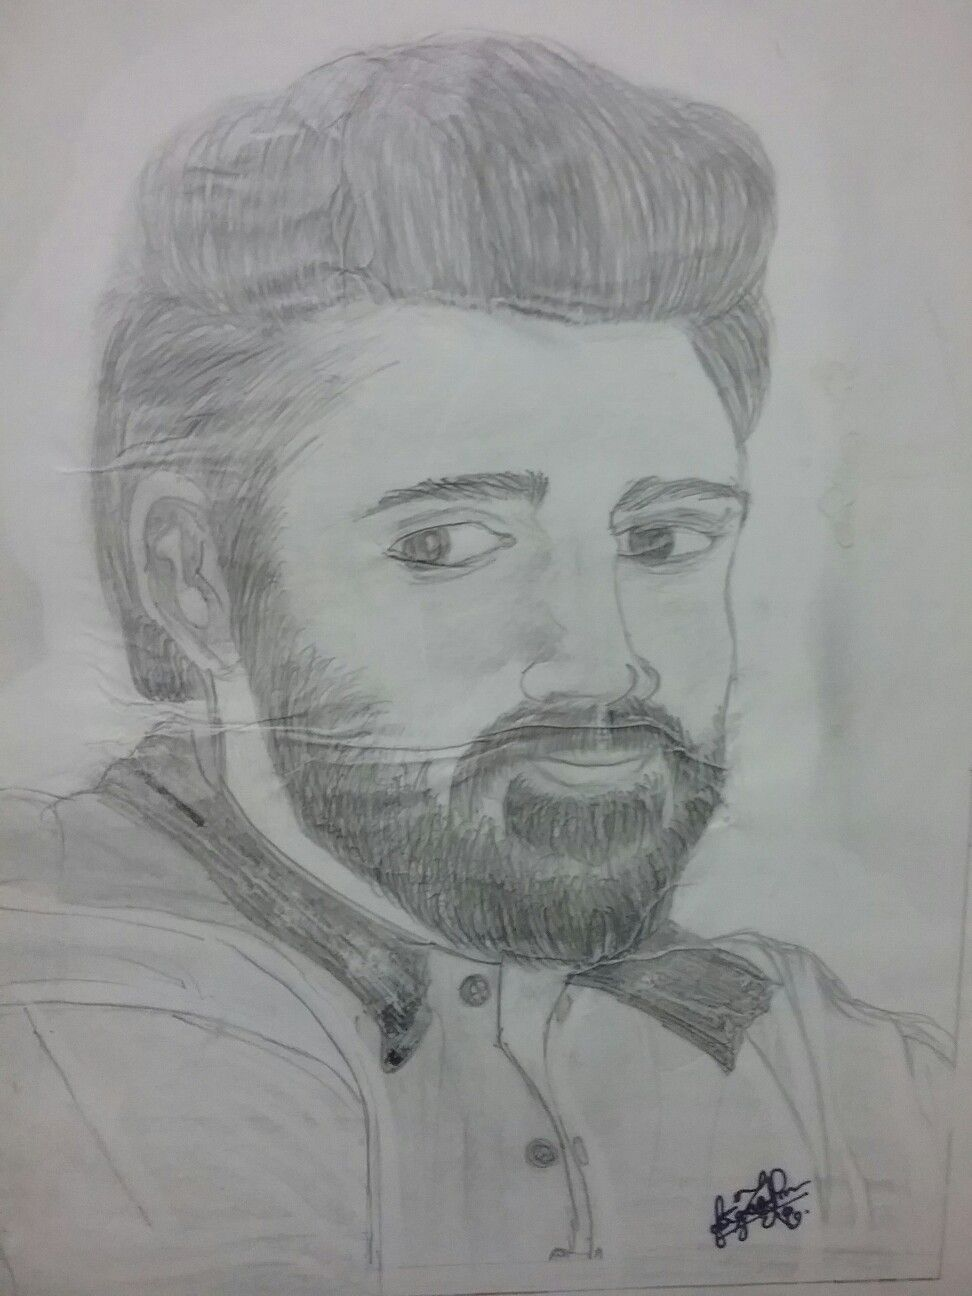 Portrait trial malayalam film actor nivinpauly pencil drawing by me